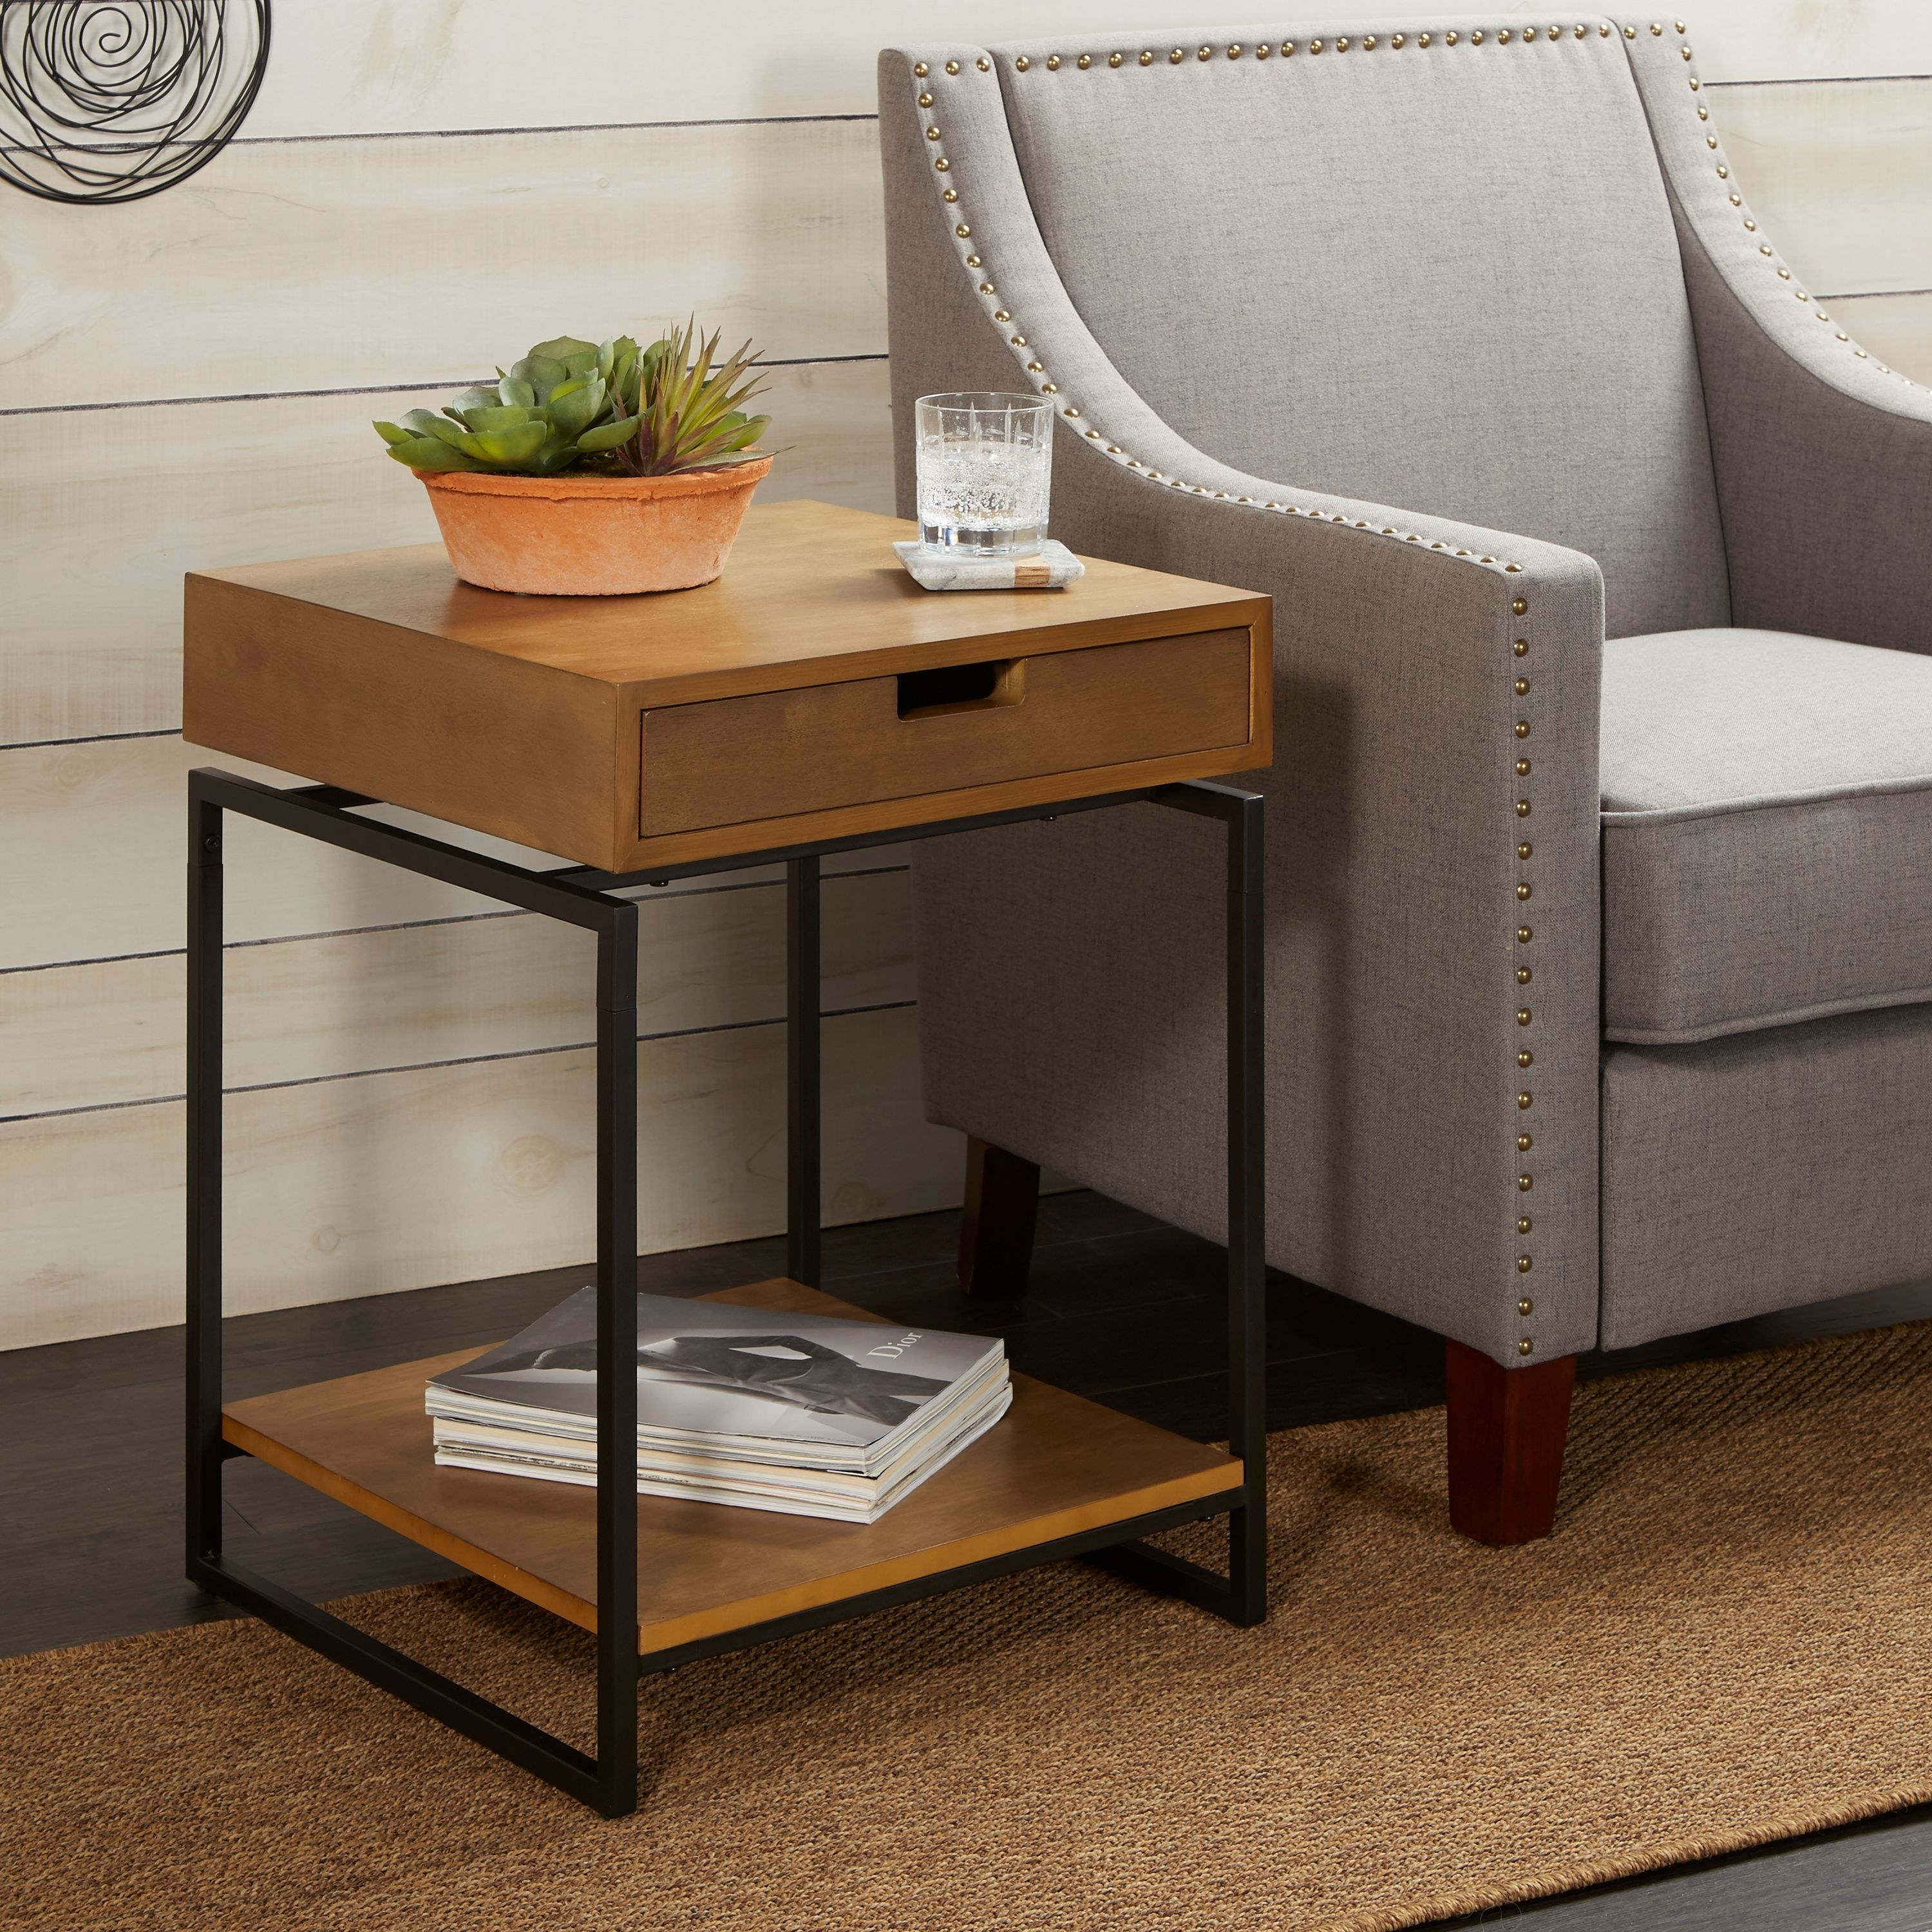 the wooden end table with black metal legs and a lower shelf